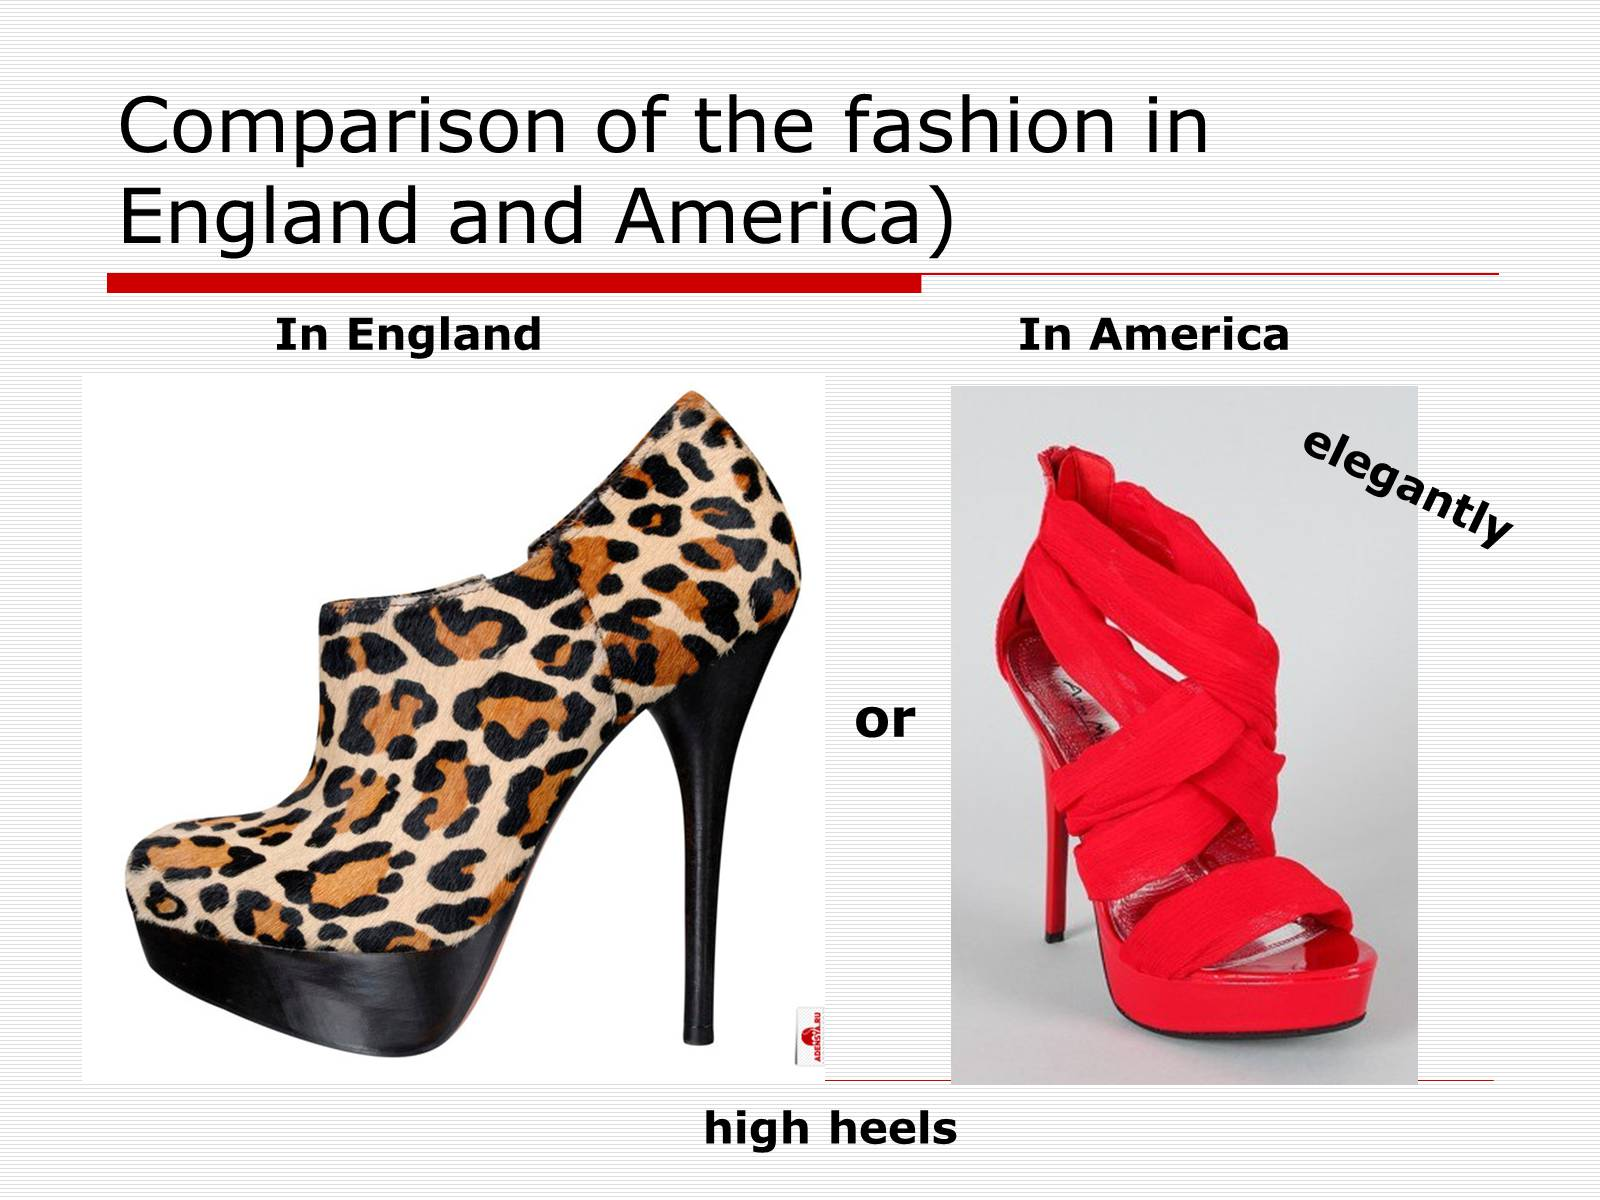 Презентація на тему «Comparison of the fashion in England and America» - Слайд #51